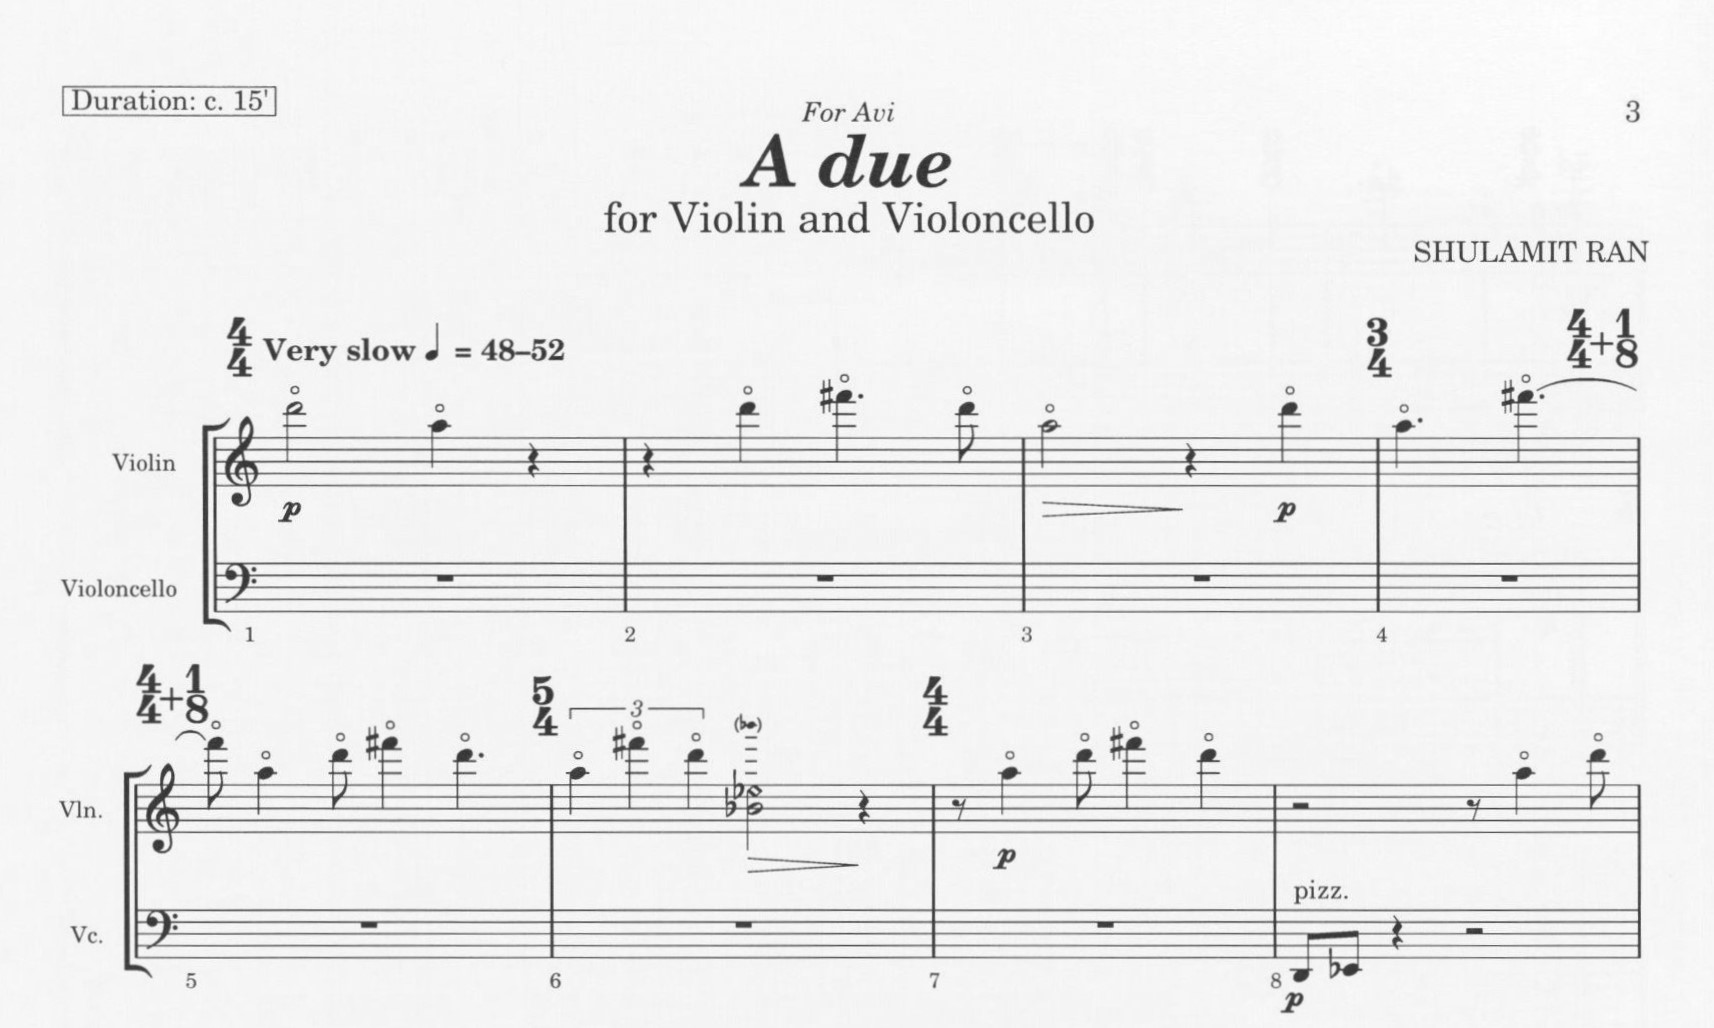 First page of A Due for Violin and Violoncello